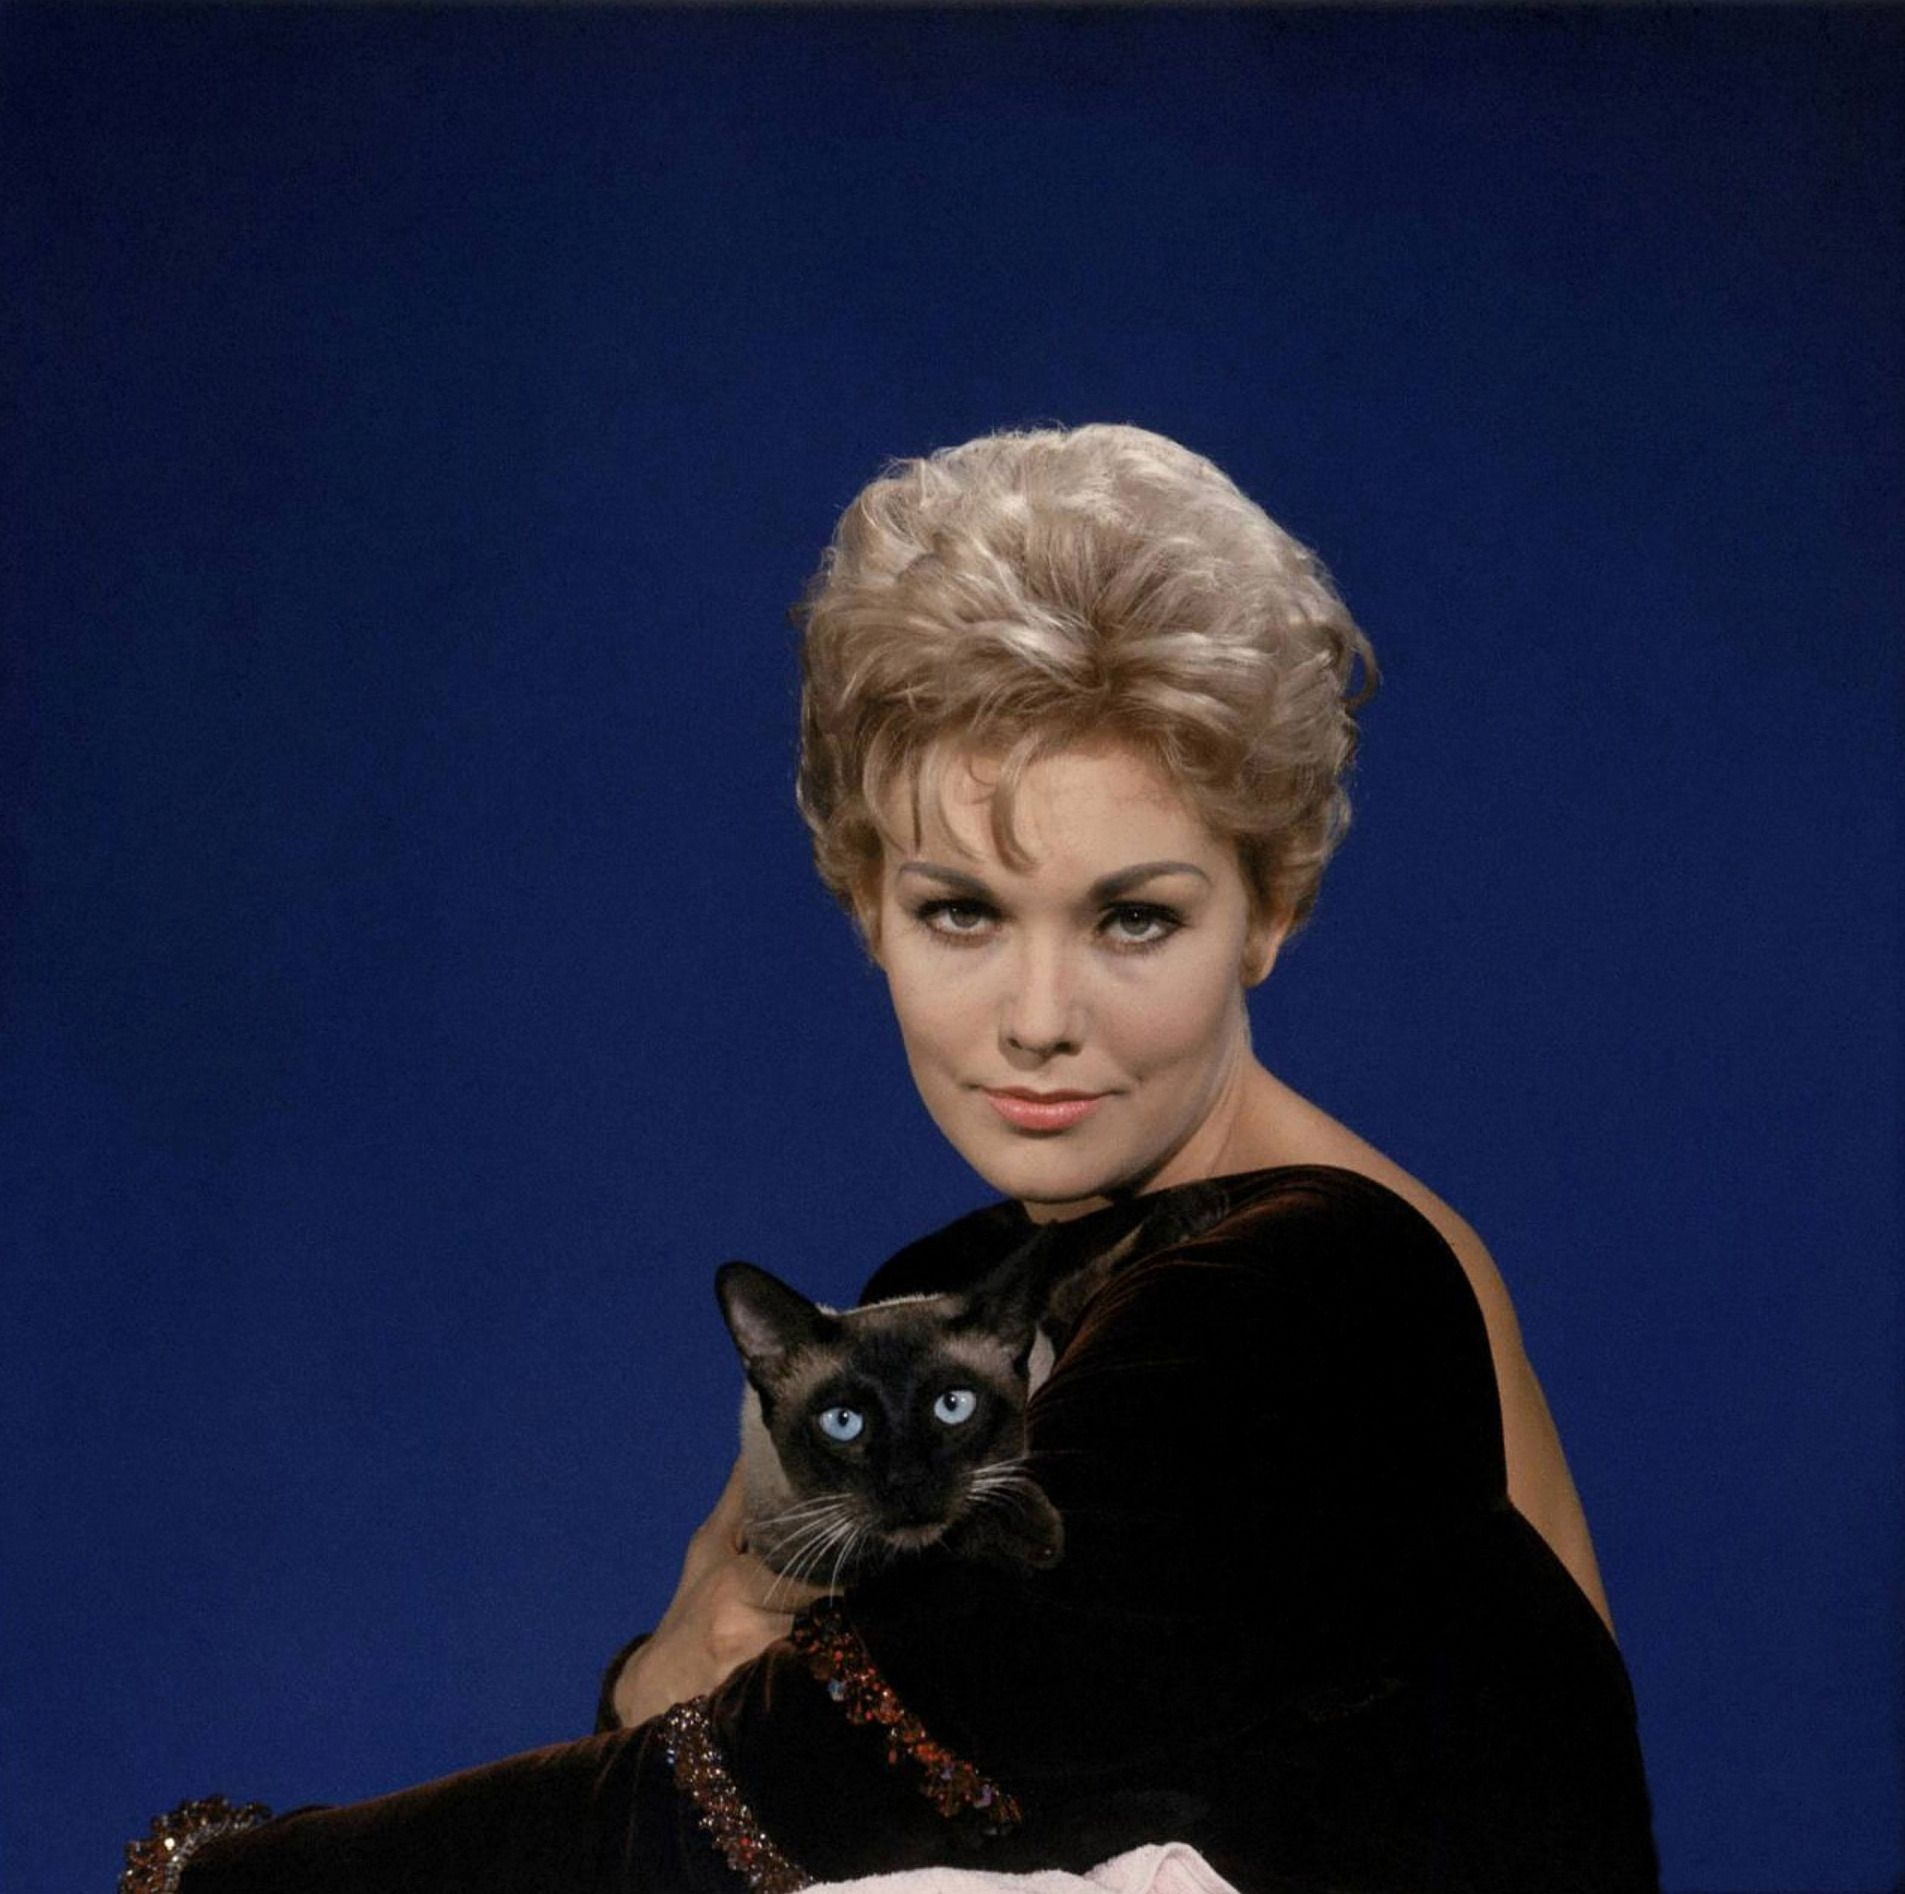 Kim Novak in Bell. Book and Candle. Another great Witch